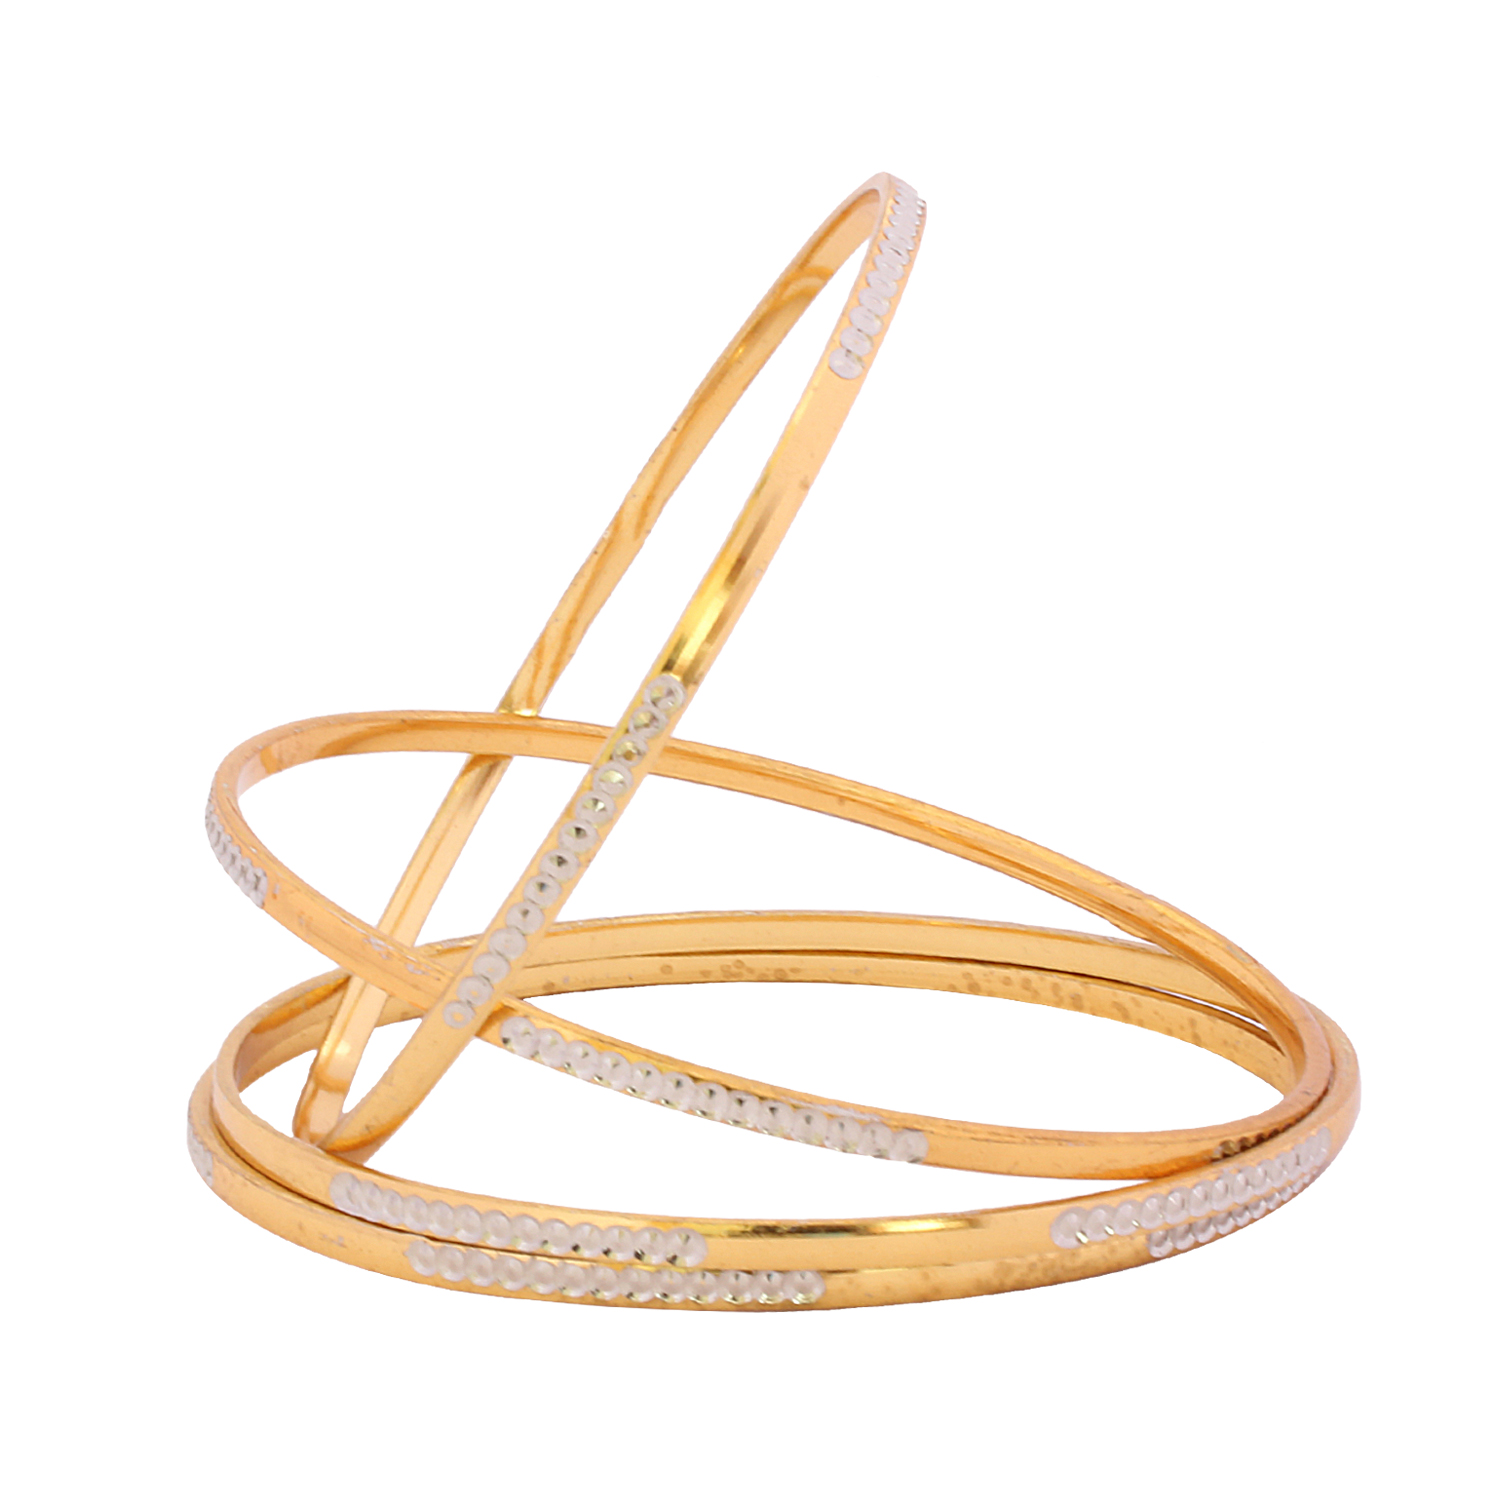 pdp in jewels online low galaxy at bracelets trendy gold bangles plated bangle for women buy prices cmplxjewjewels